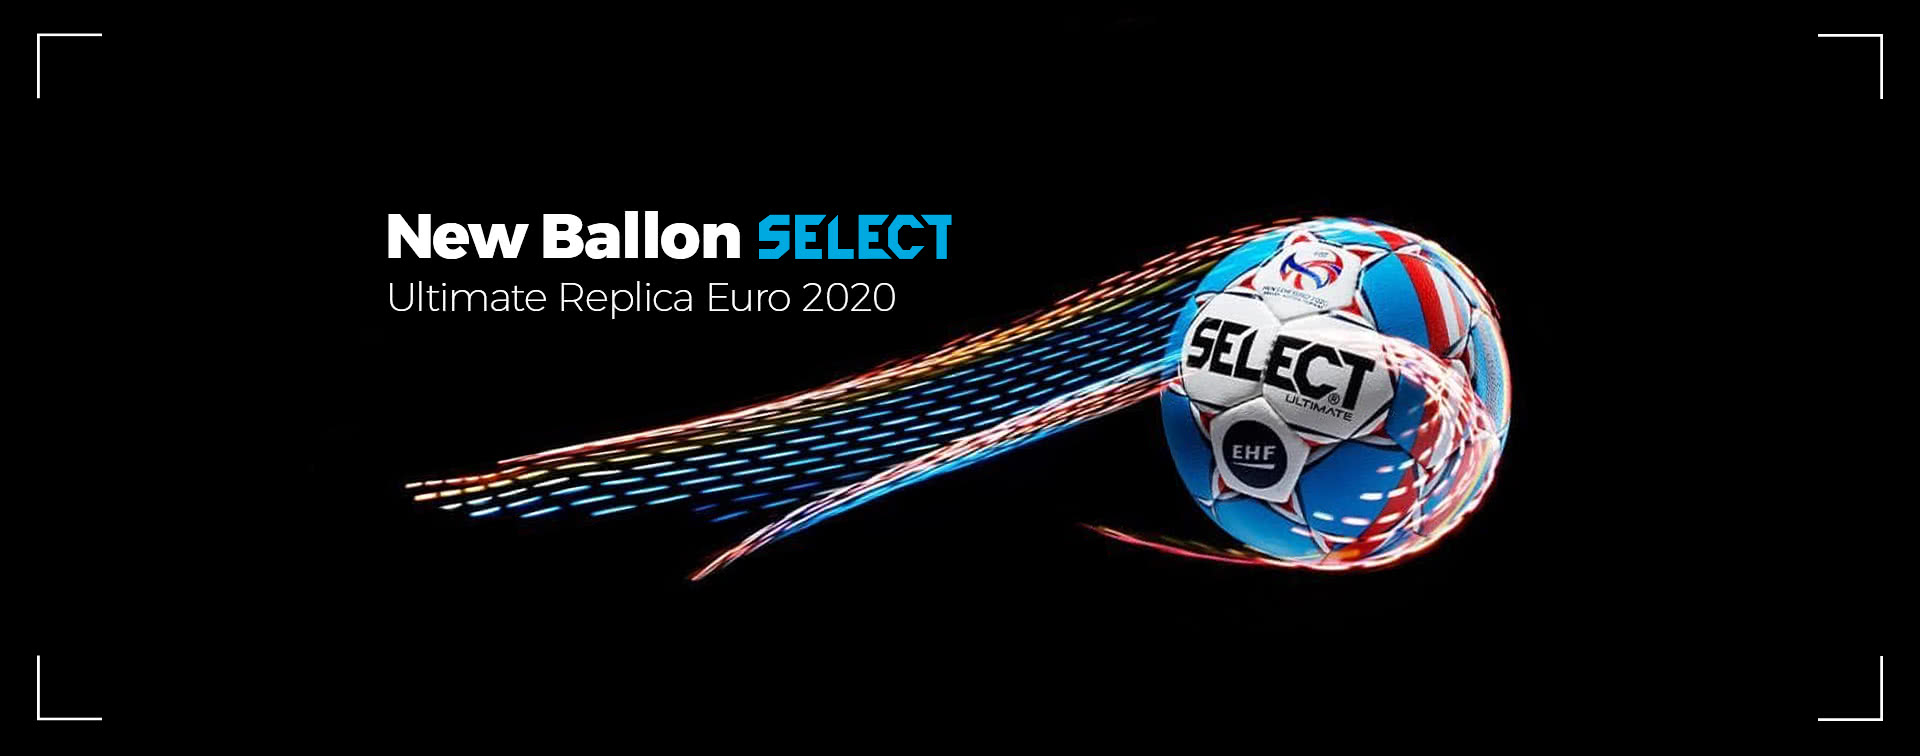 Ballon Select Replica Euro 2020